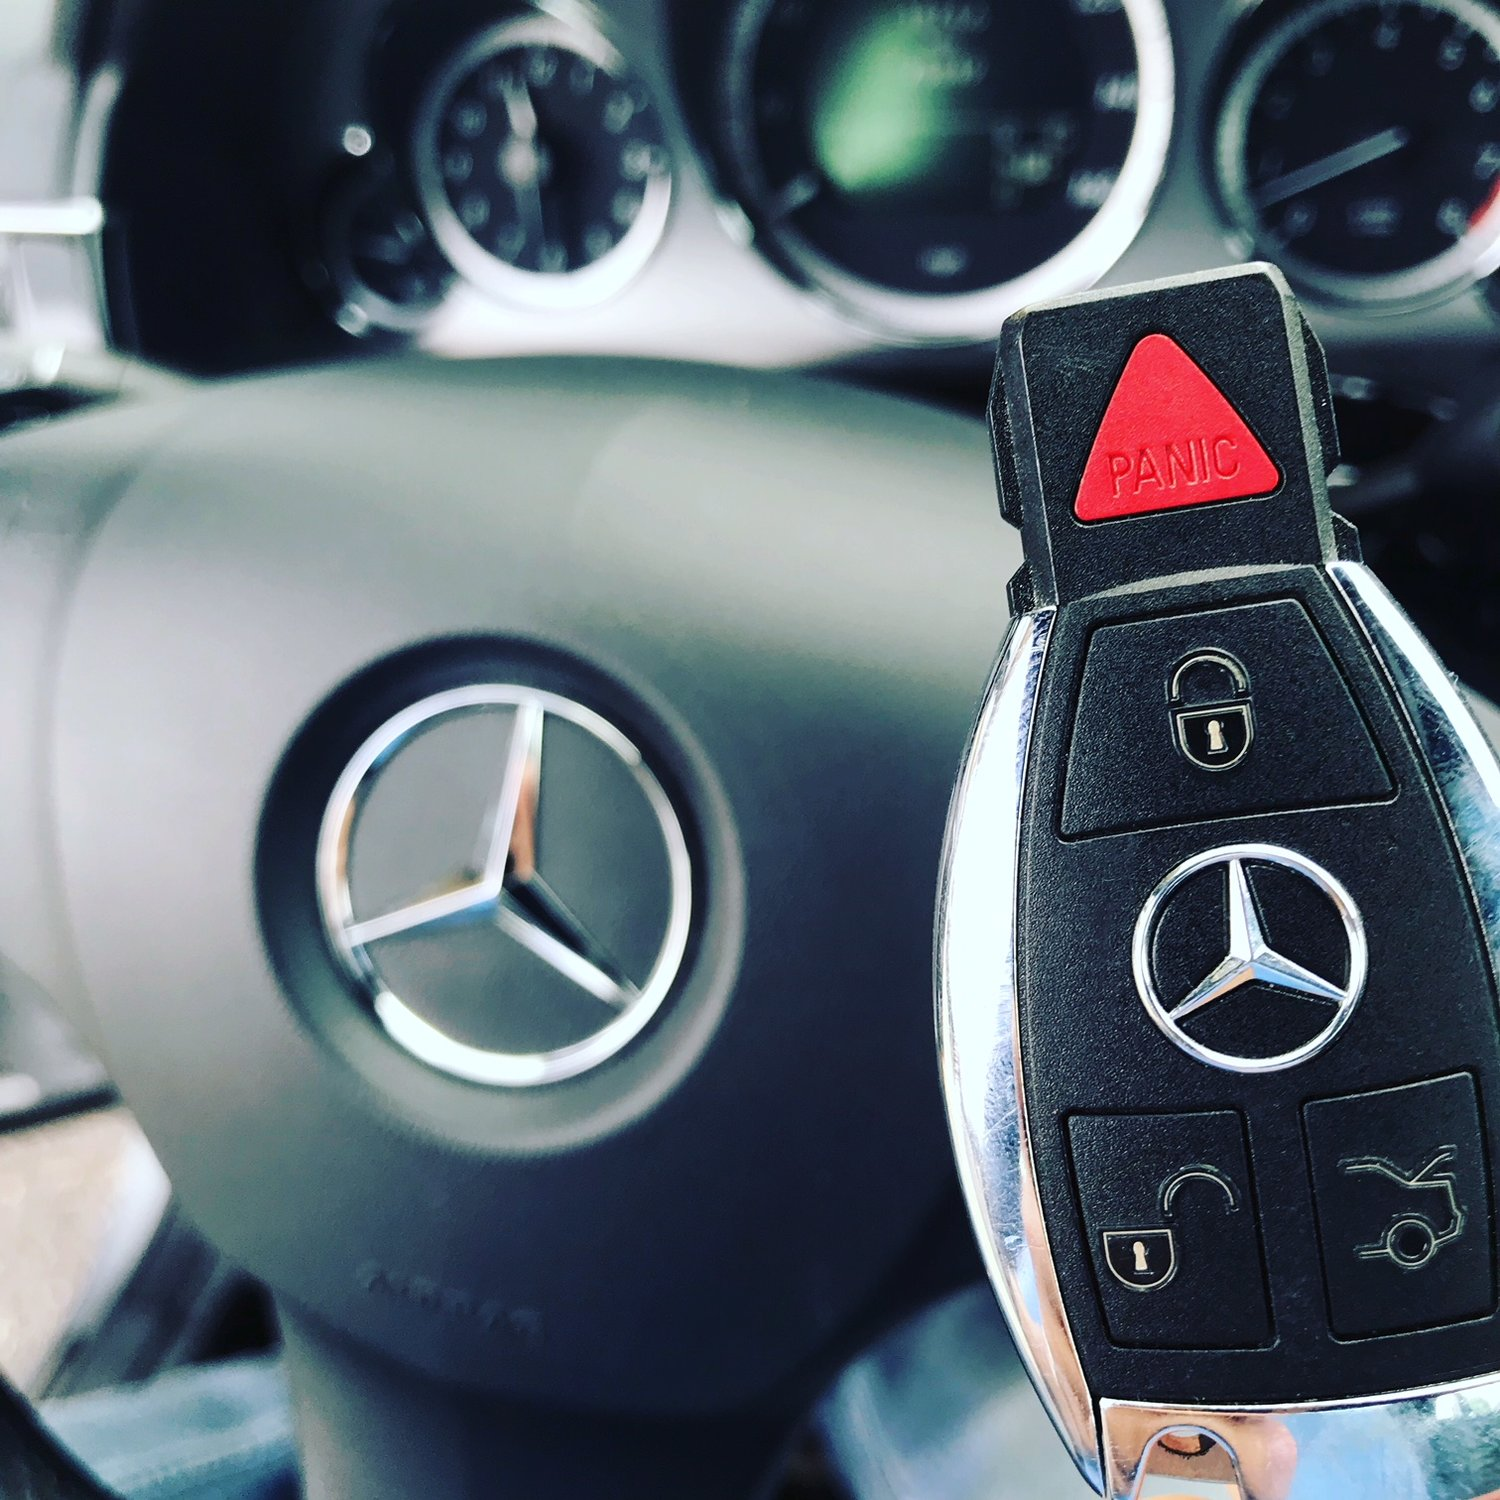 Replacement Mercedes Keys Now Available at some Keyless Shop